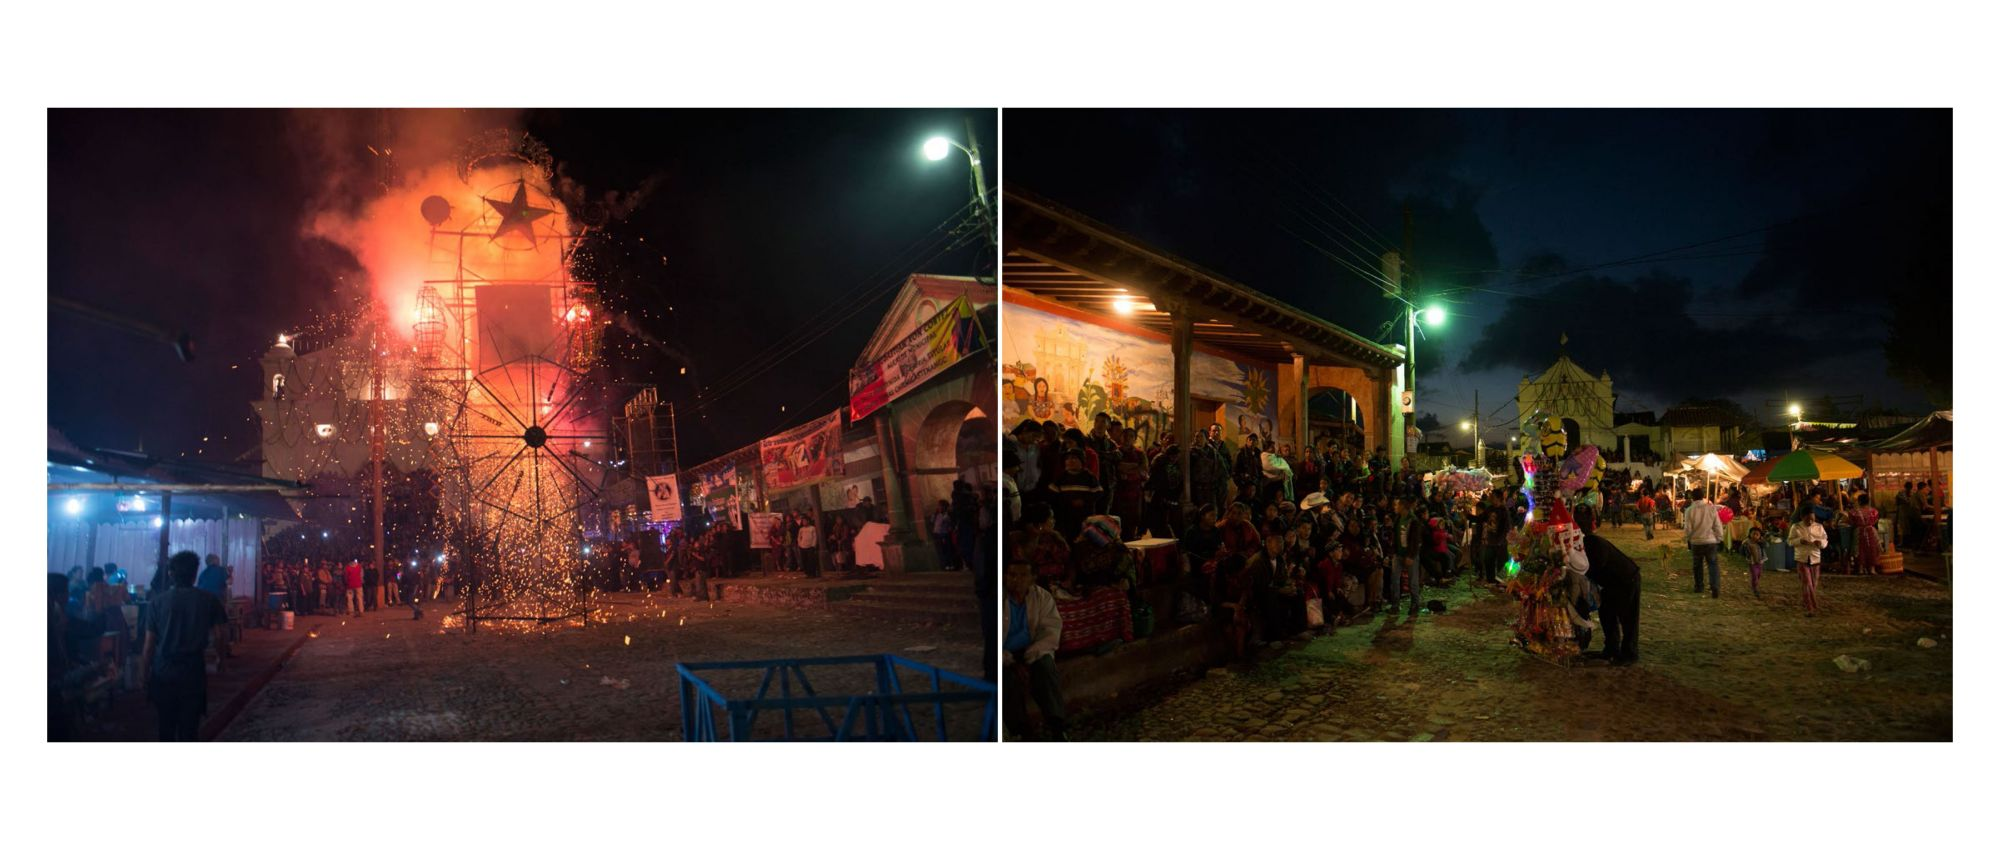 Guatemala Album - Pages 18-19: Fireworks